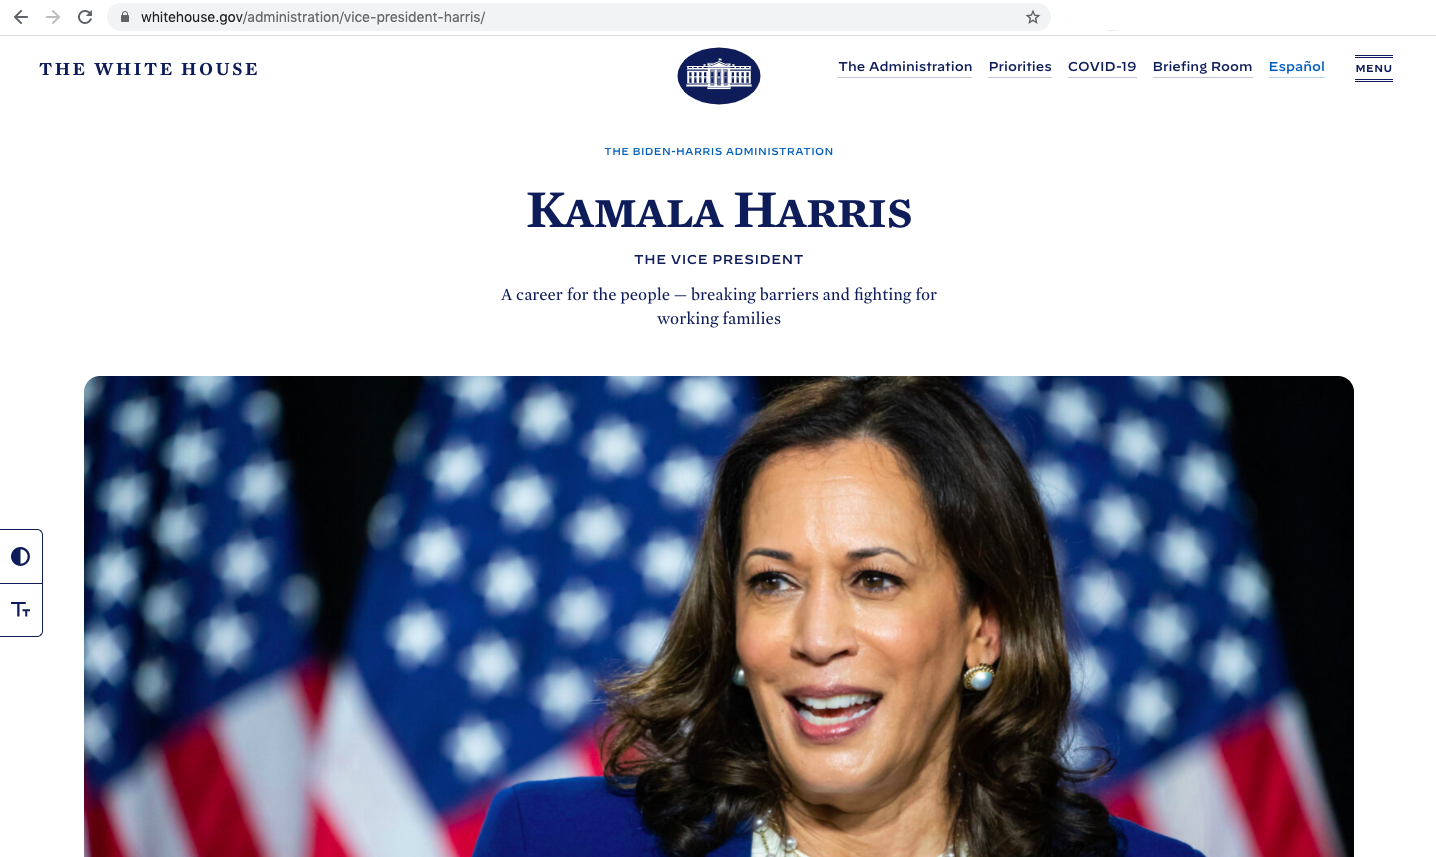 screenshot of the White House website in its original language